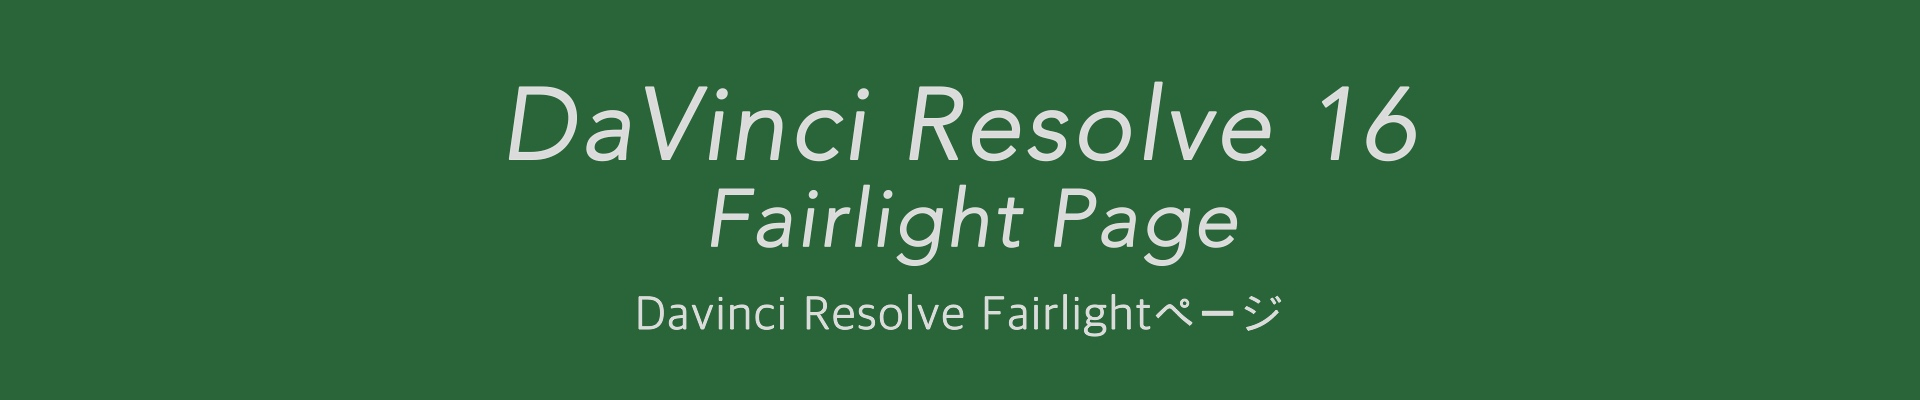 DaVinci Resolve 16 Fairlight ページ